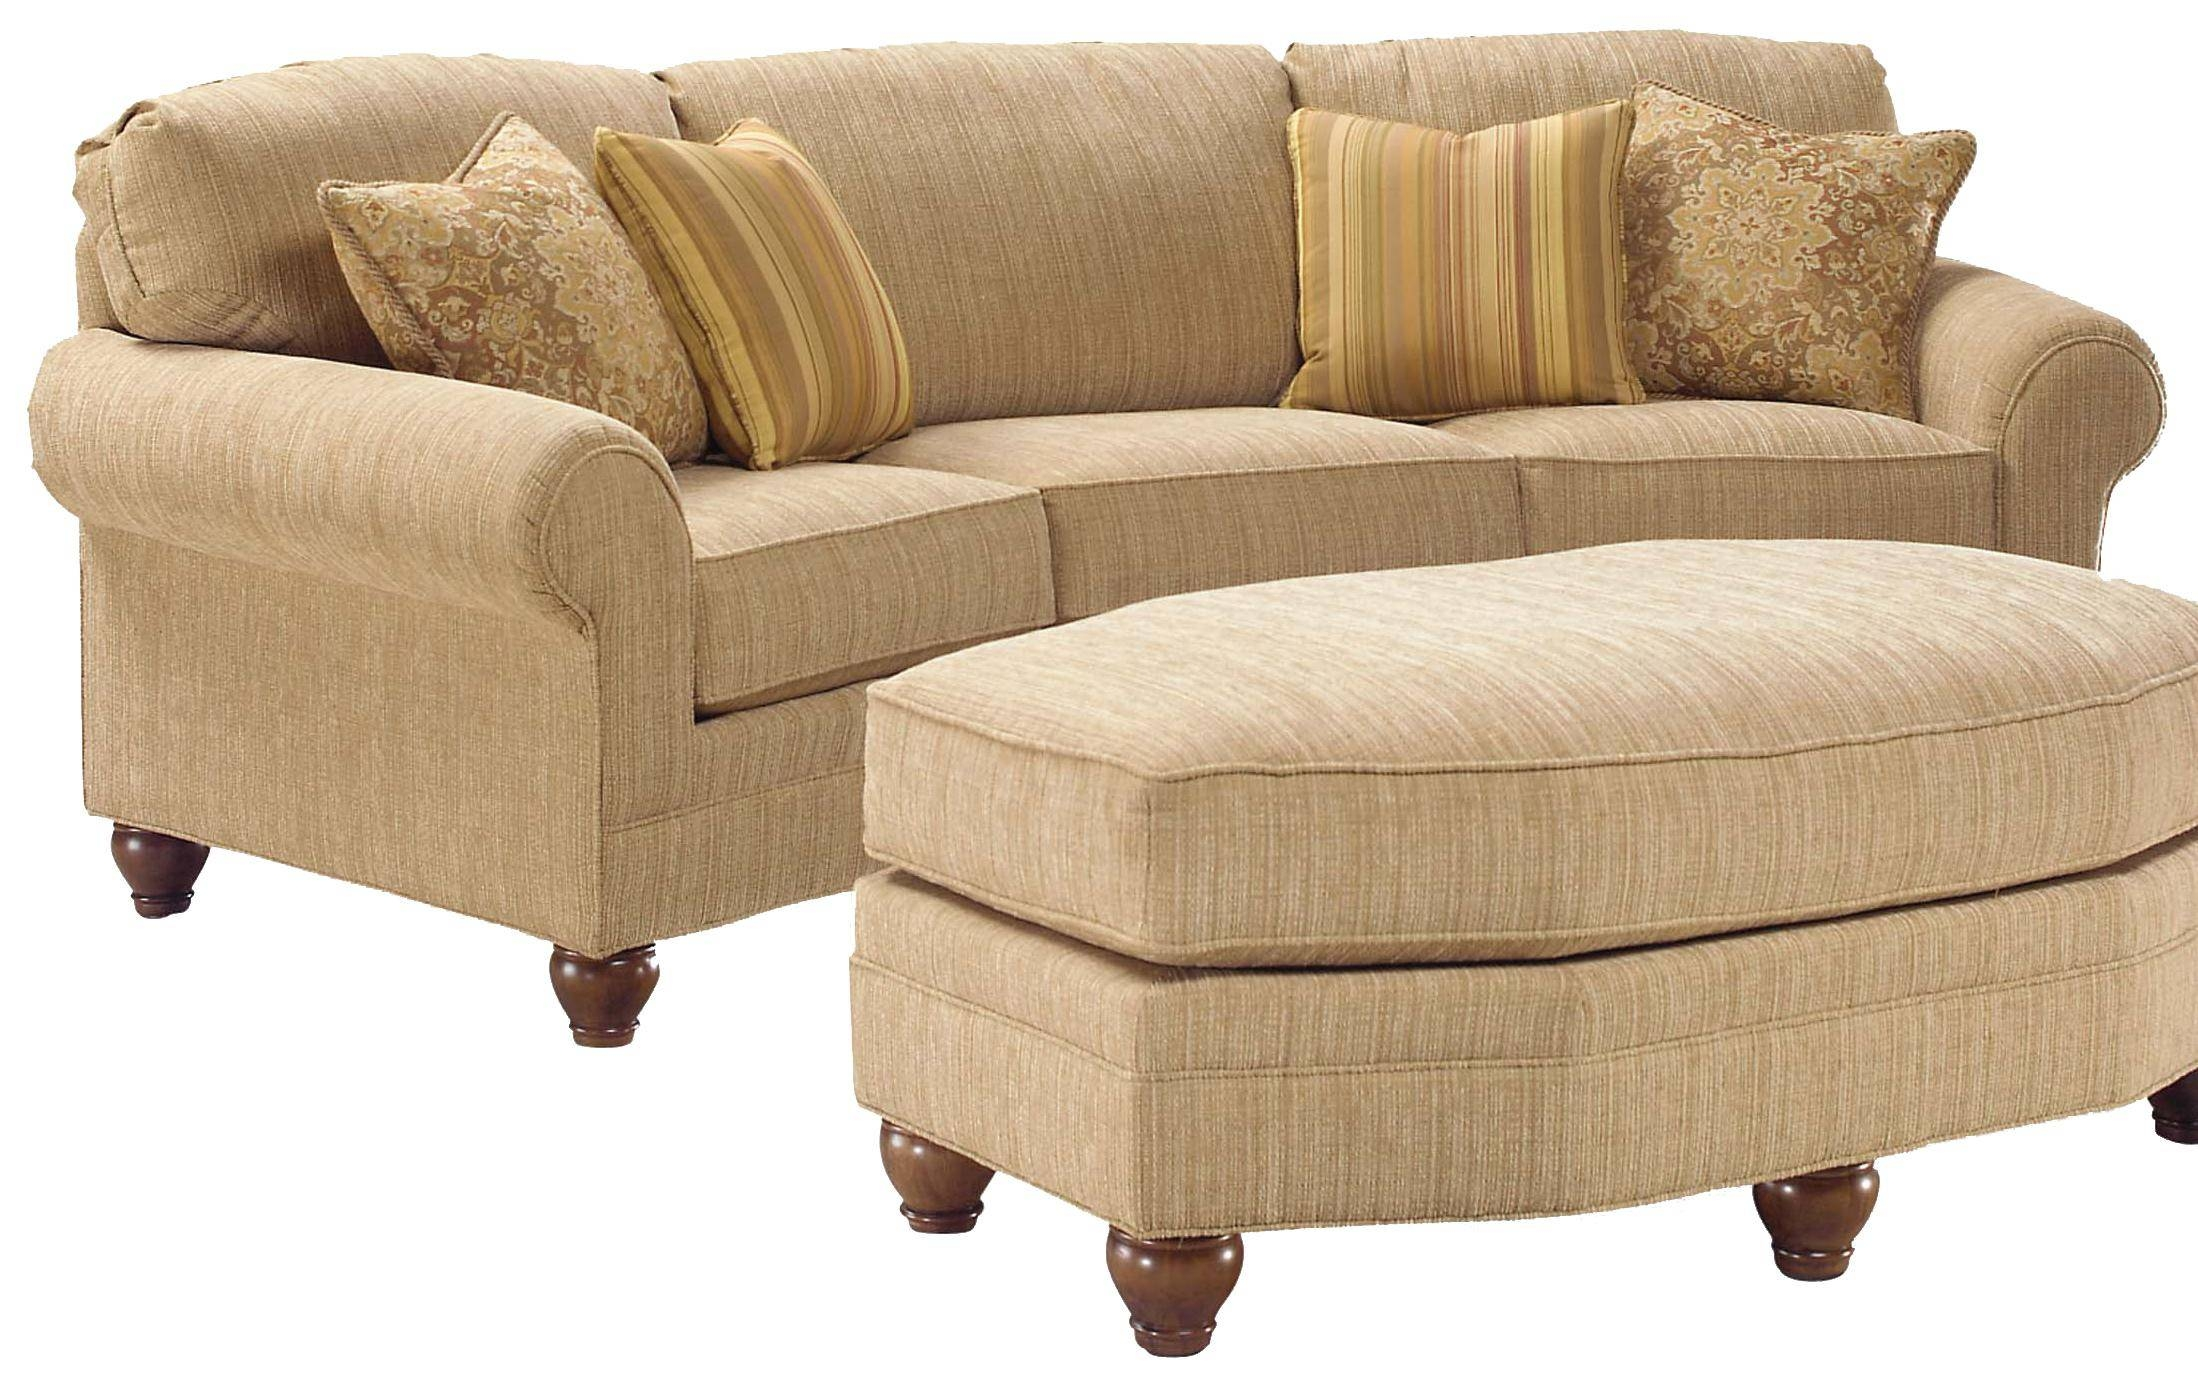 Furniture: Leather Curved Sectional Sofa With Wood Legs For Living pertaining to Wood Legs Sofas (Image 13 of 30)